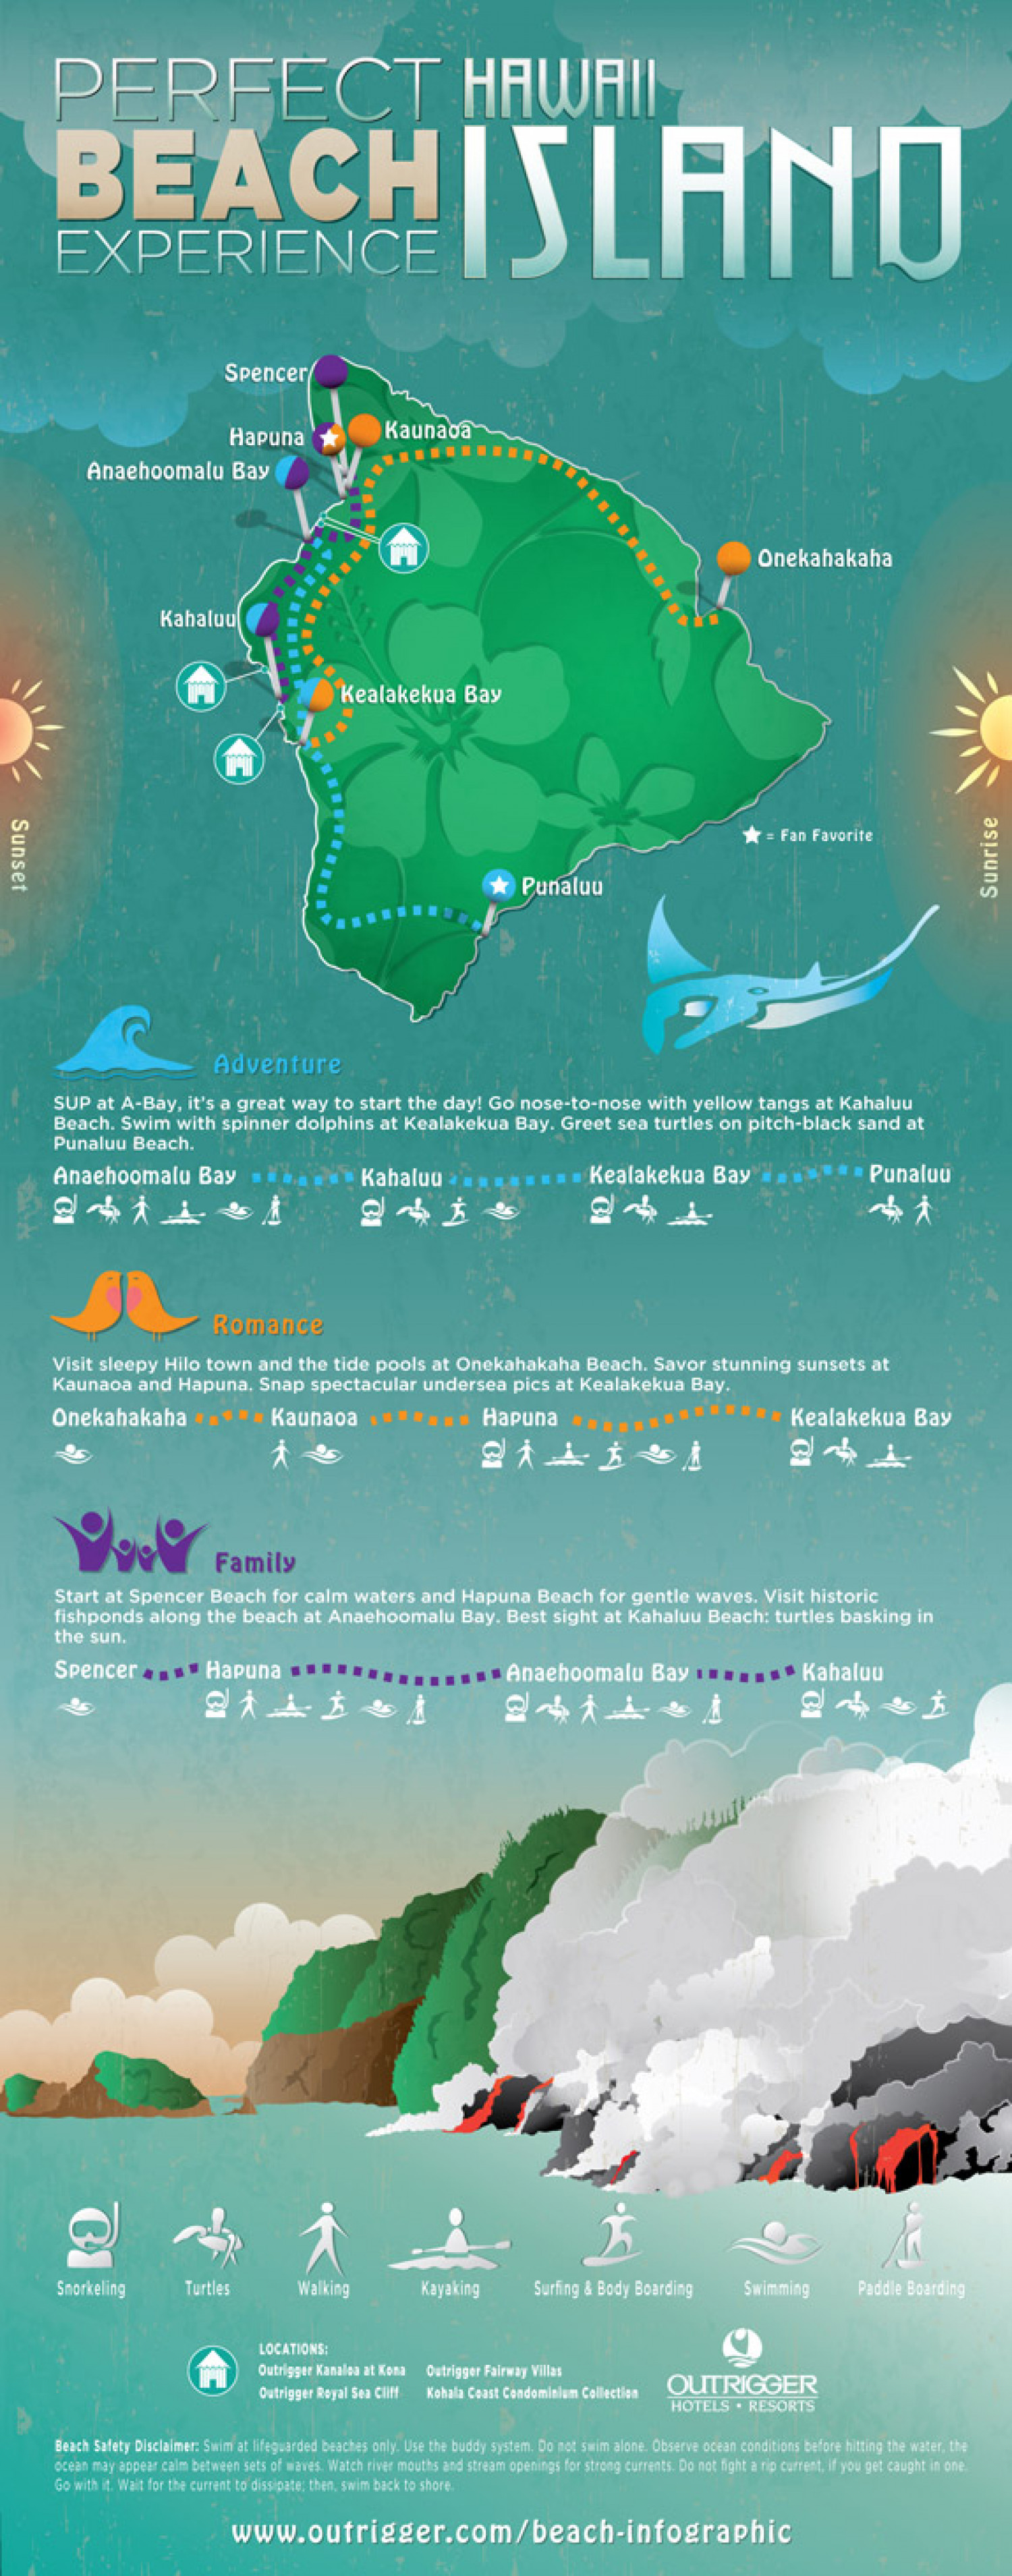 Perfect Hawaii Island Beach Experience Infographic